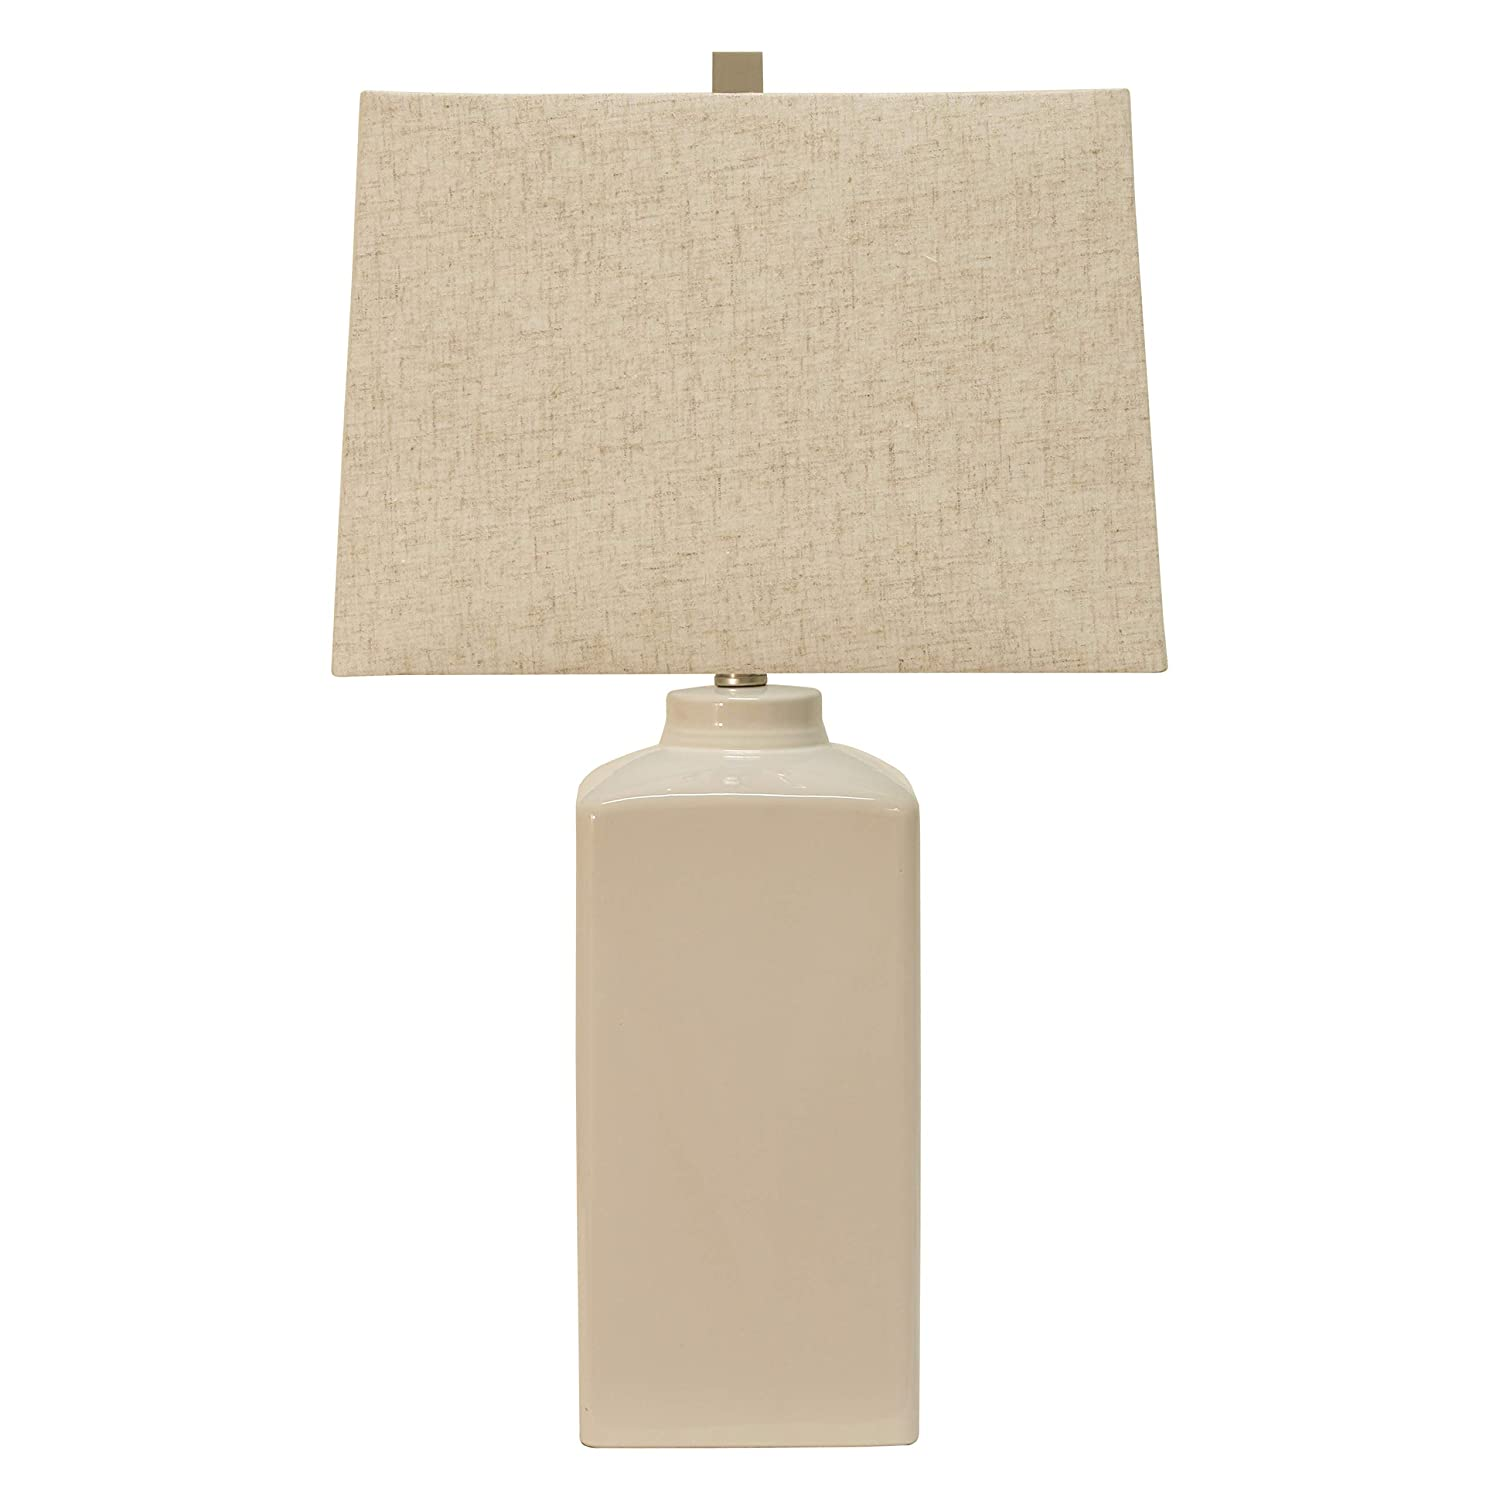 Decor Therapy TL17297 Table Lamp, White